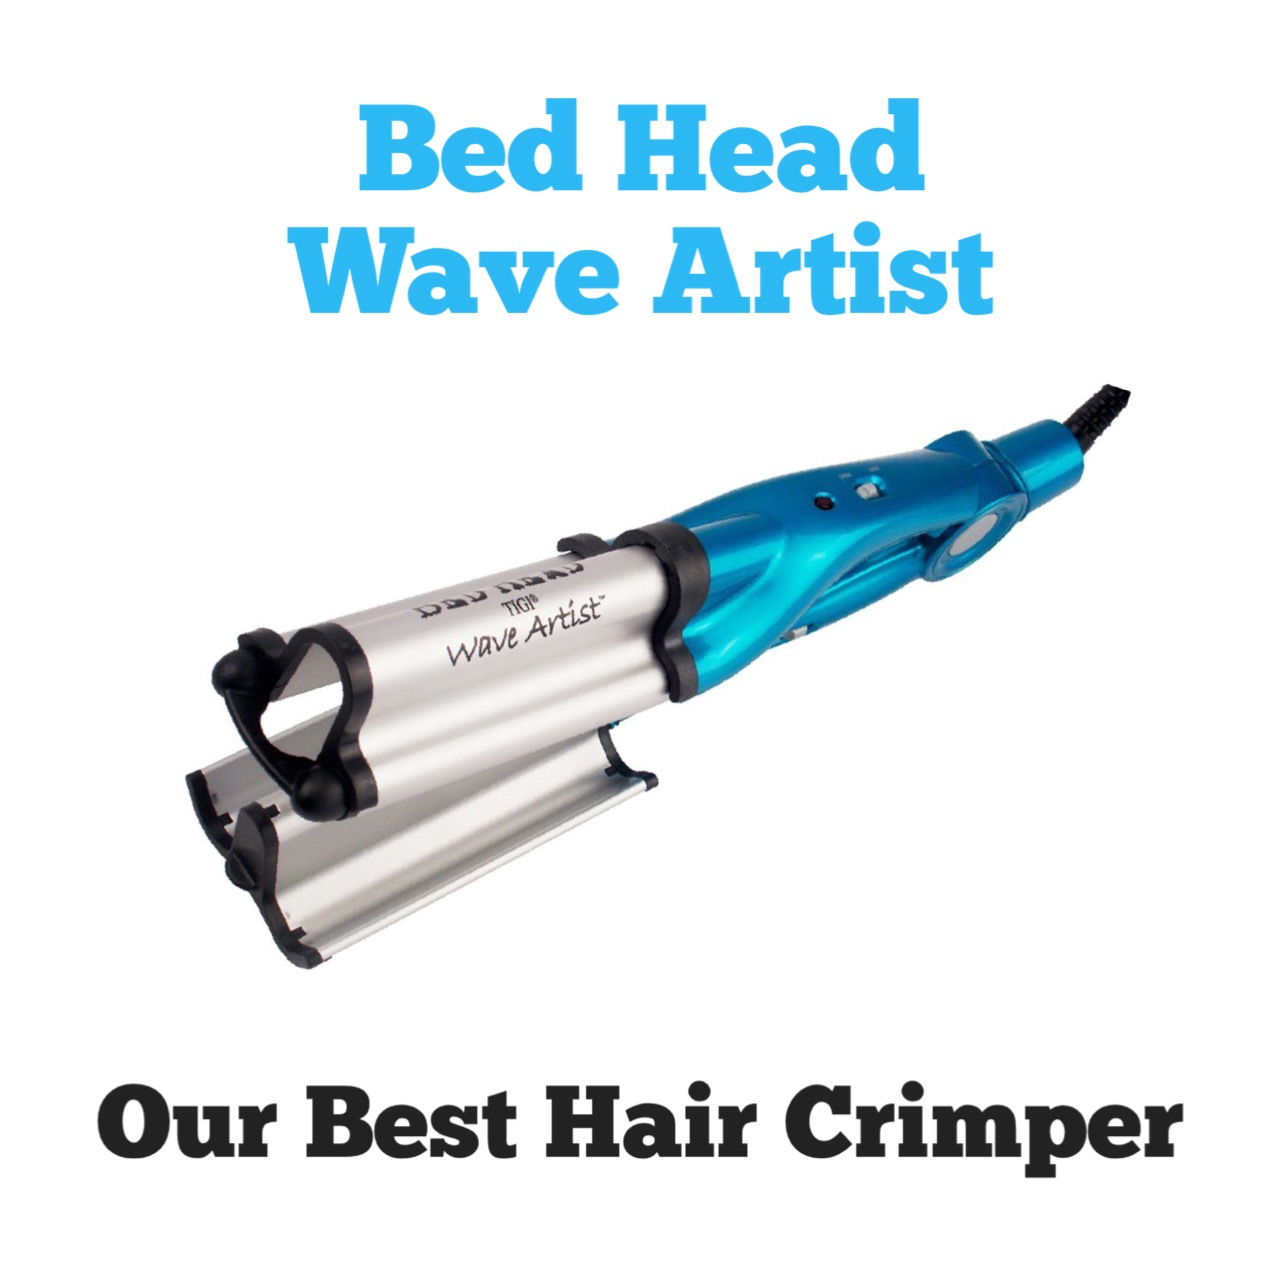 Bed Head Wave Artist